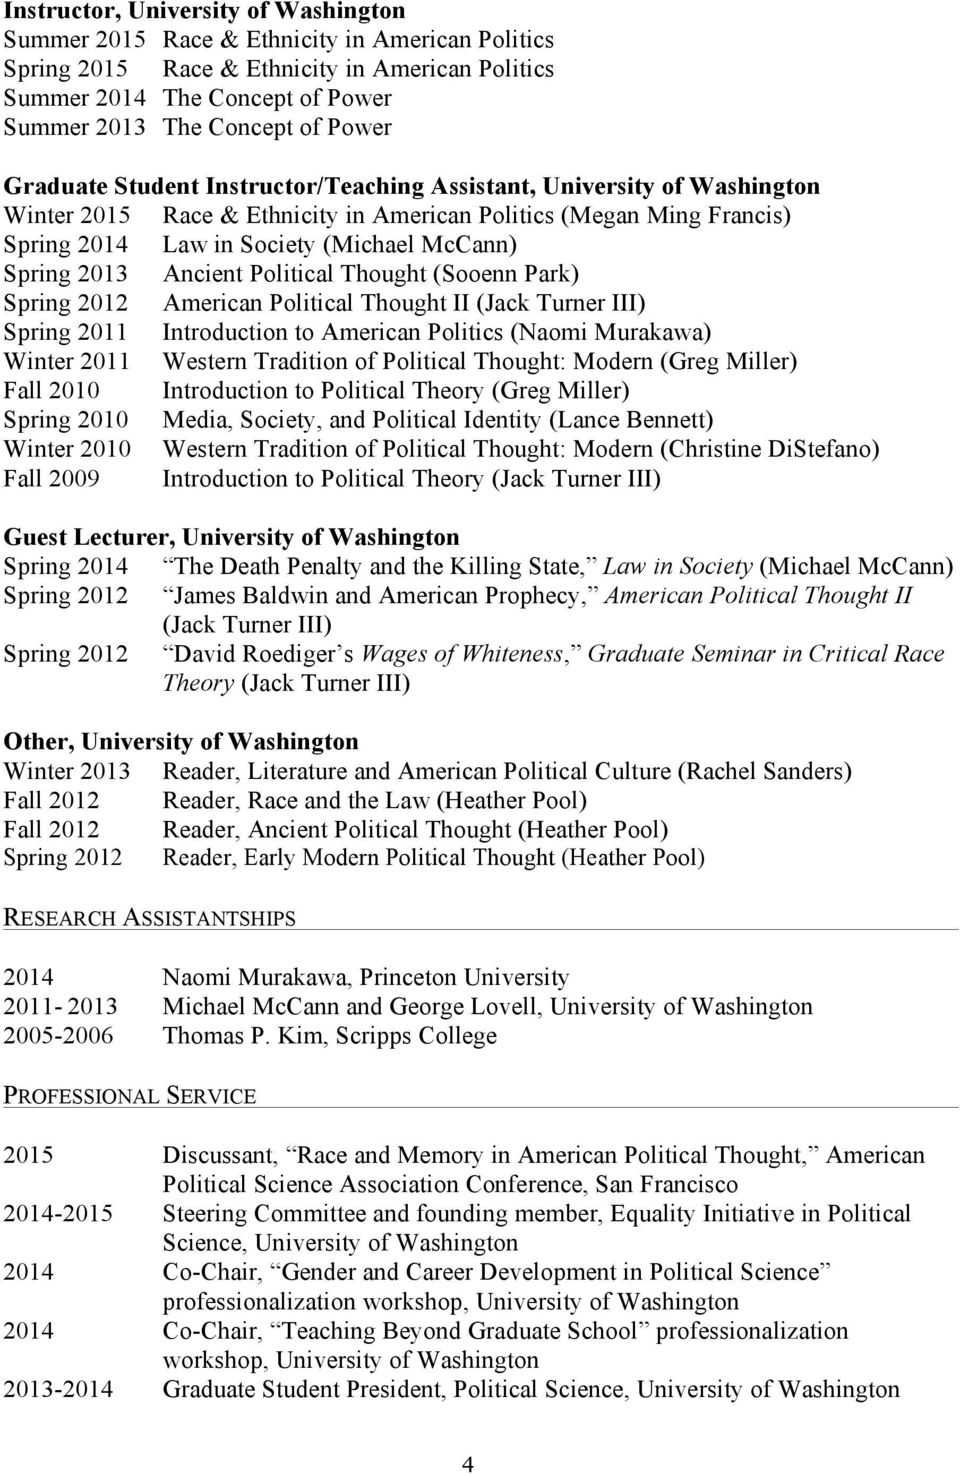 Spring 2012 American Political Thought II (Jack Turner III) Spring 2011 Introduction to American Politics (Naomi Murakawa) Winter 2011 Western Tradition of Political Thought: Modern (Greg Miller)